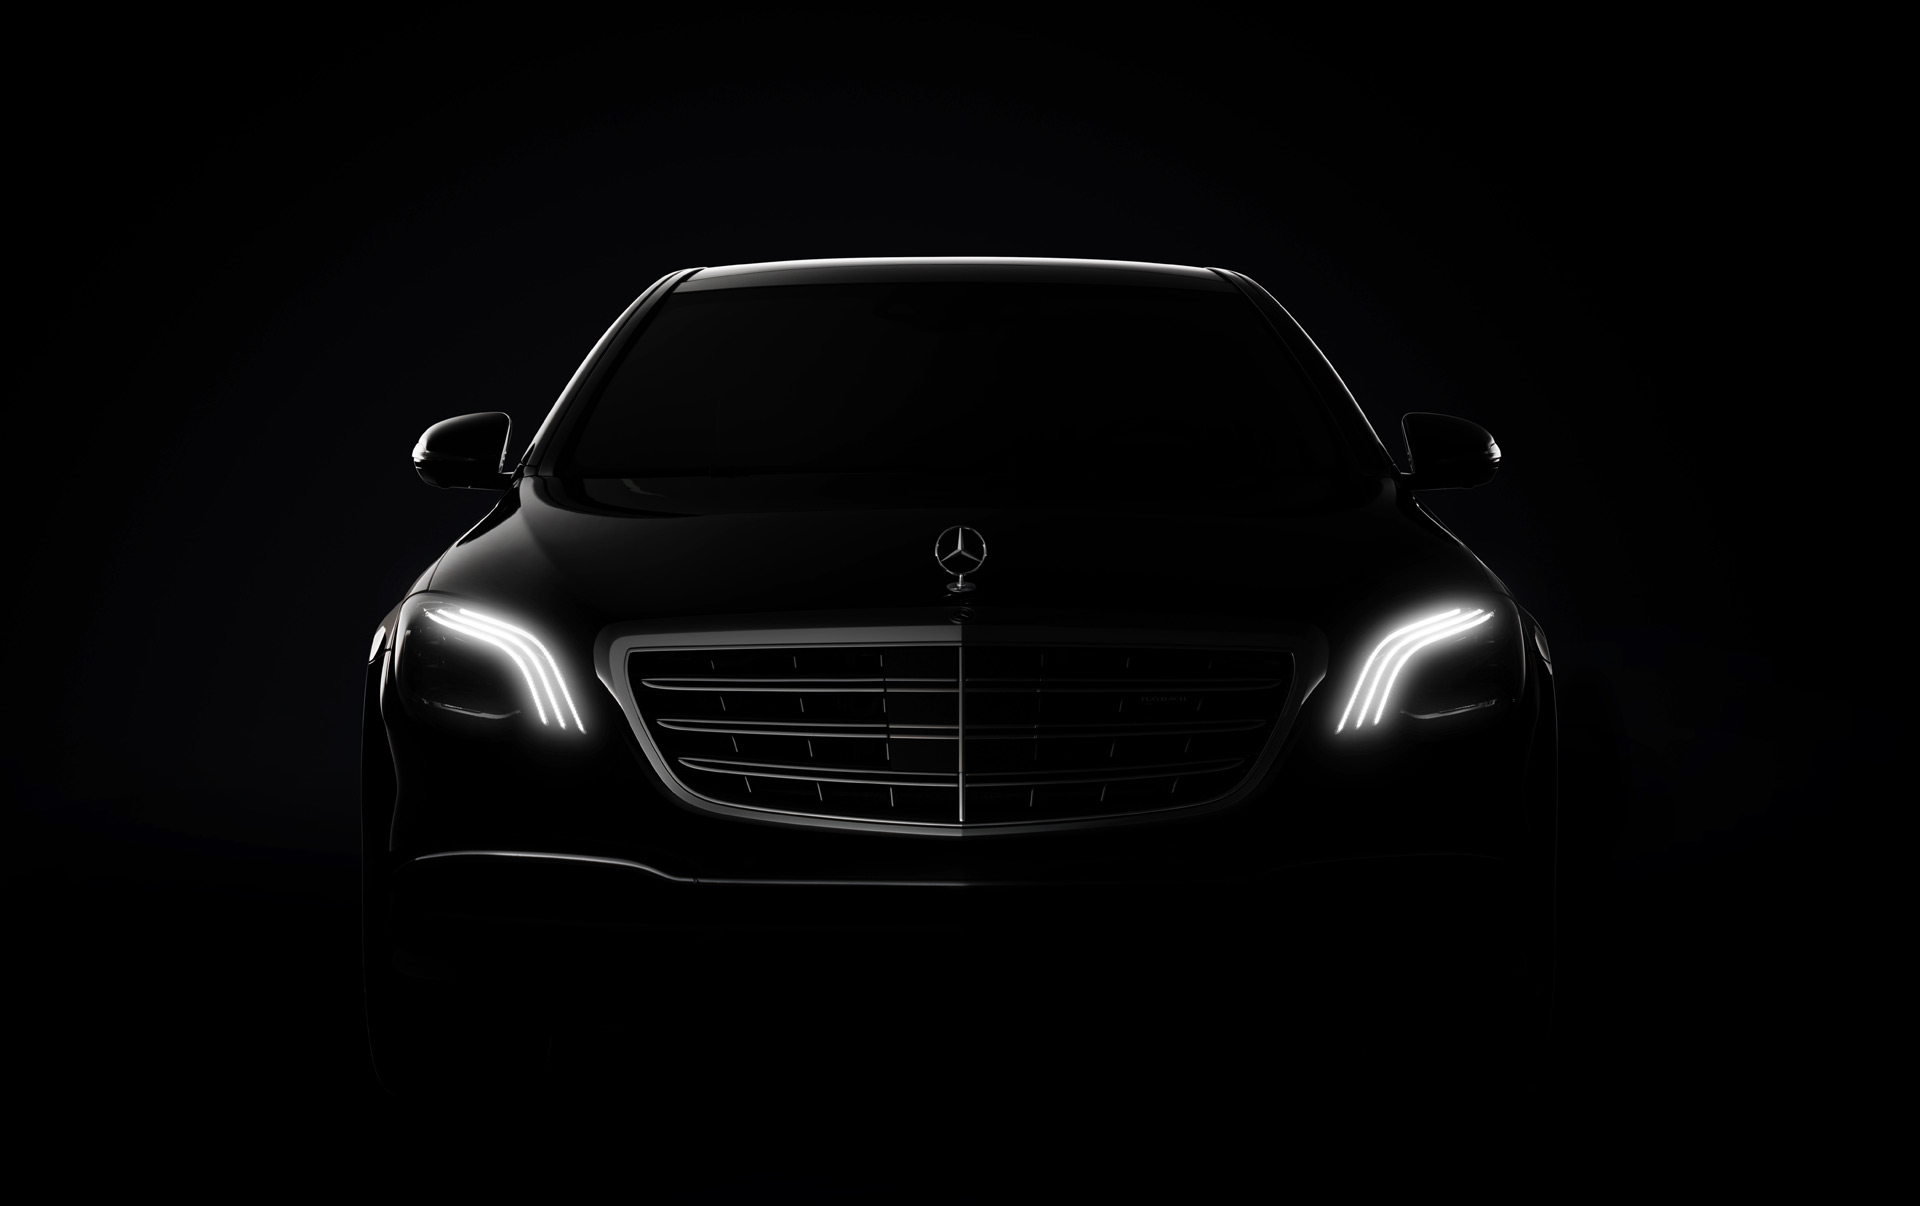 http://images.hgmsites.net/hug/teaser-for-2018-mercedes-benz-s-class-debuting-at-2017-shanghai-auto-show_100599934_h.jpg